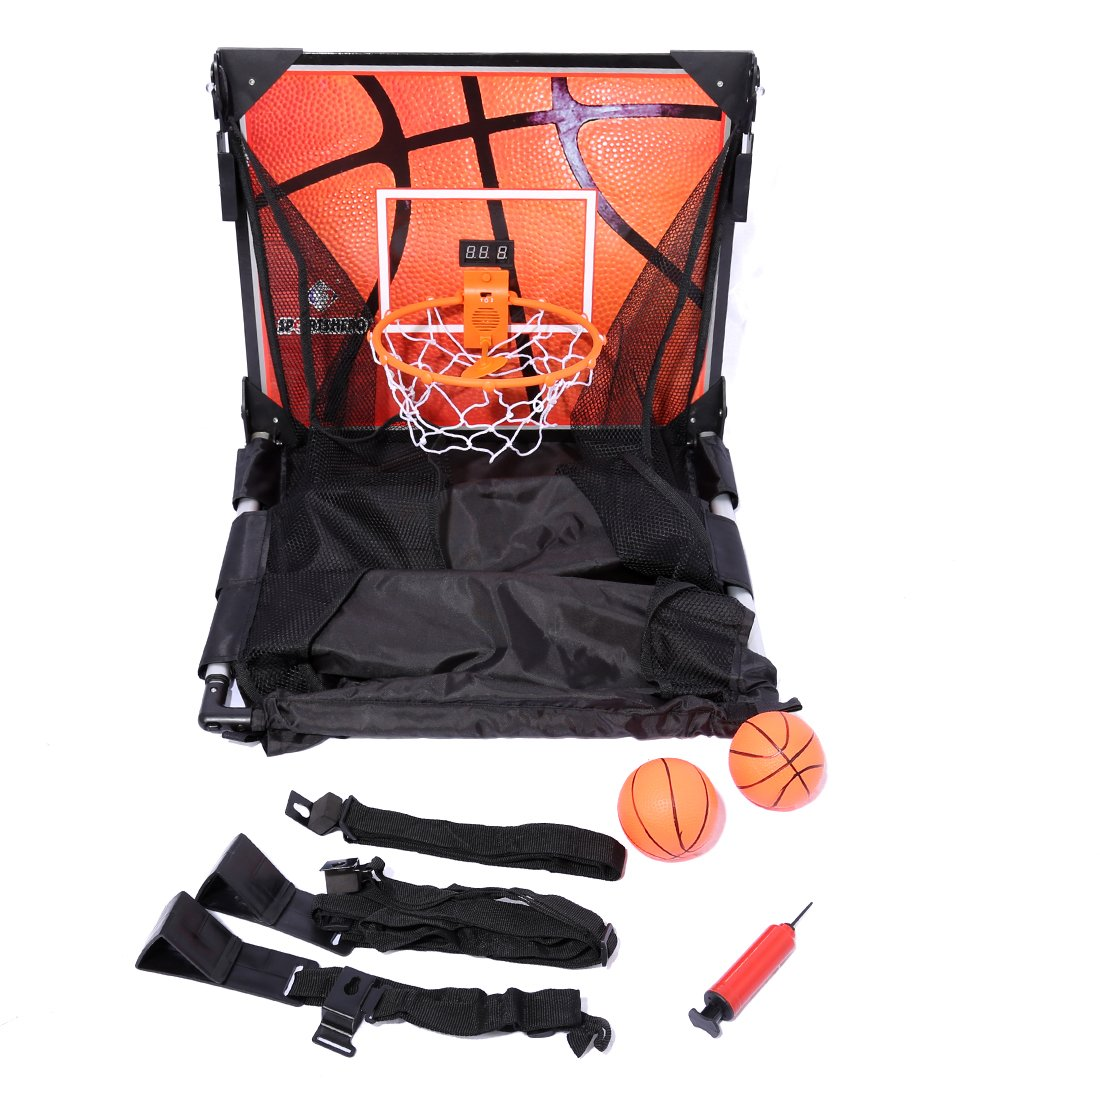 Basketball Shooting Machine PINCHUANGHUI Door Hanging Automatic Scoring Basketball Shooting Machine Foldable Shooting Hoop - Main Black by PINCHUANGHUI (Image #2)